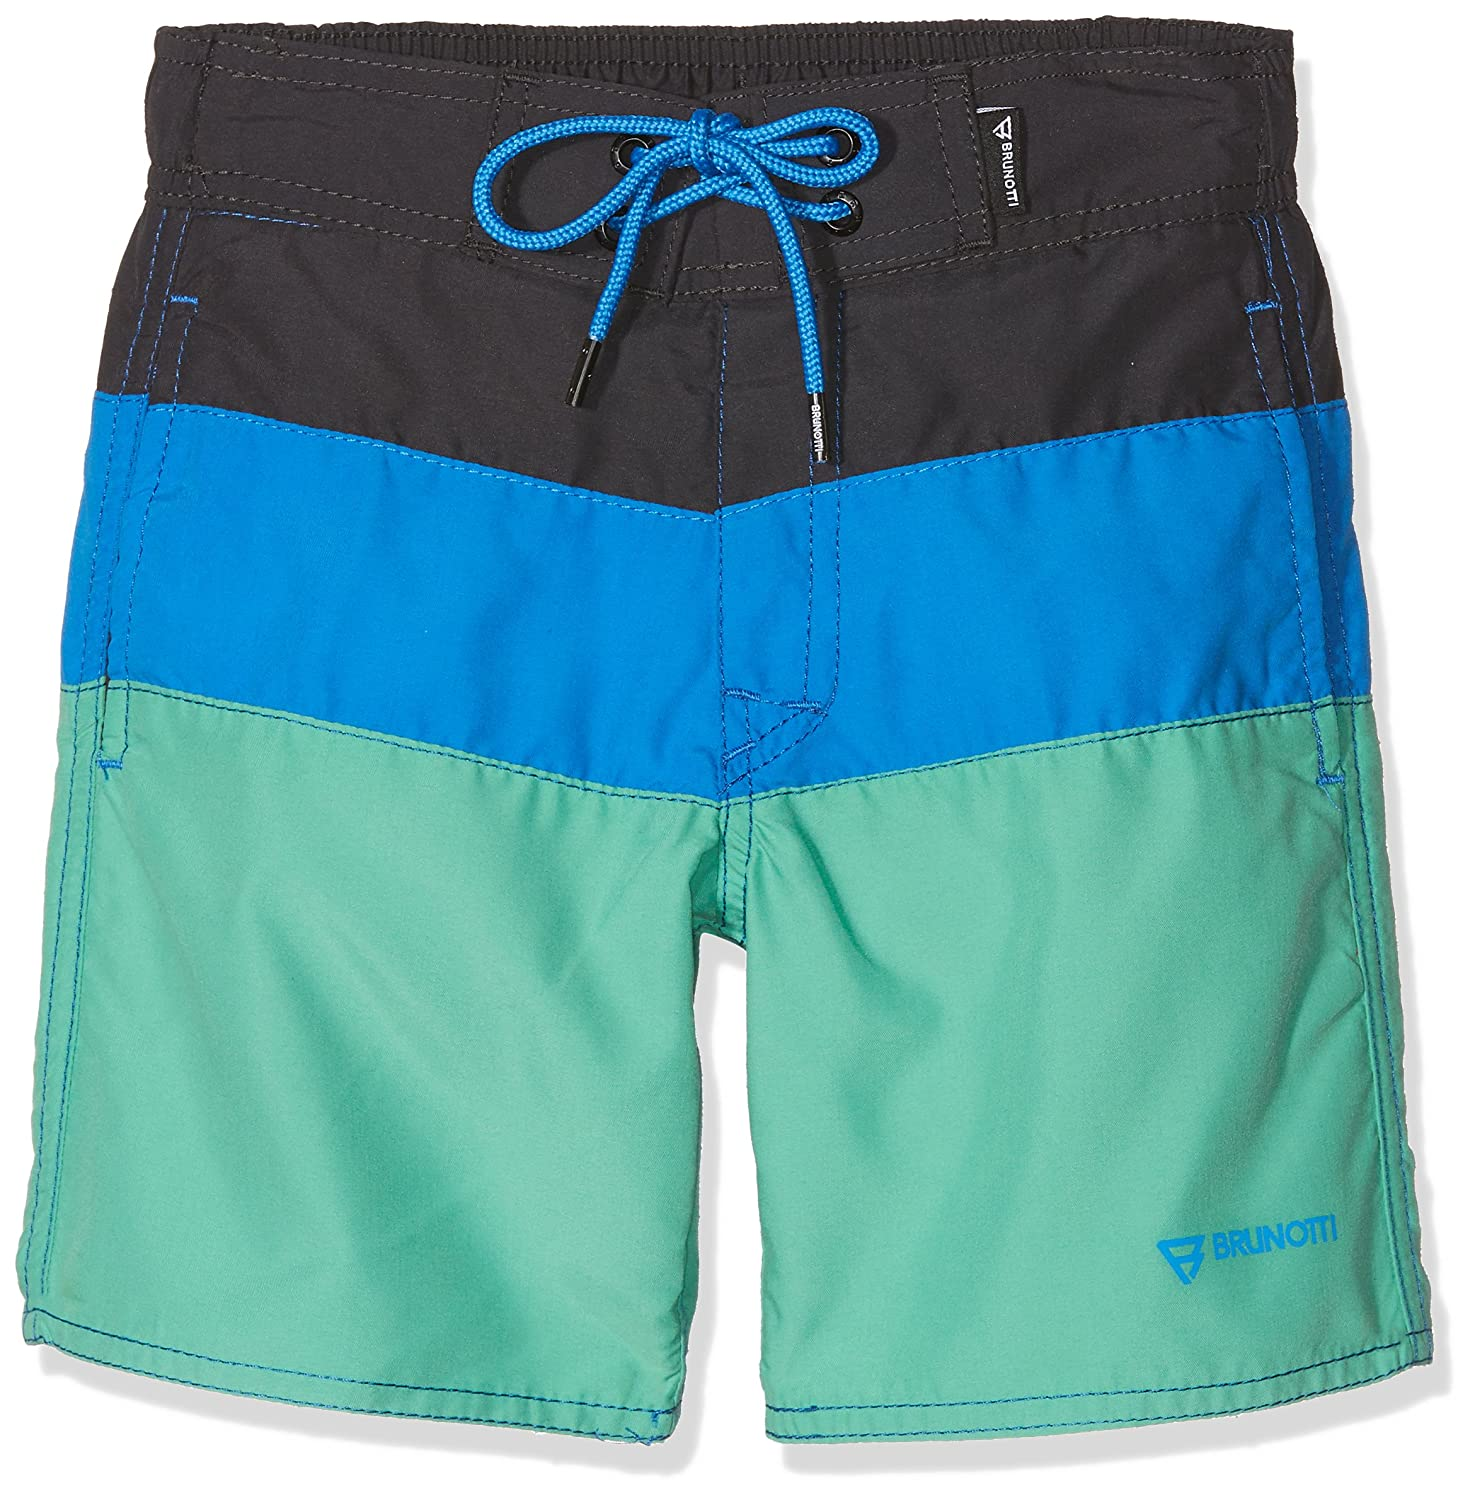 Brunotti Jungen Catamaran Jr Boys Shorts Badeshort BRUOT|#Brunotti 1813046011